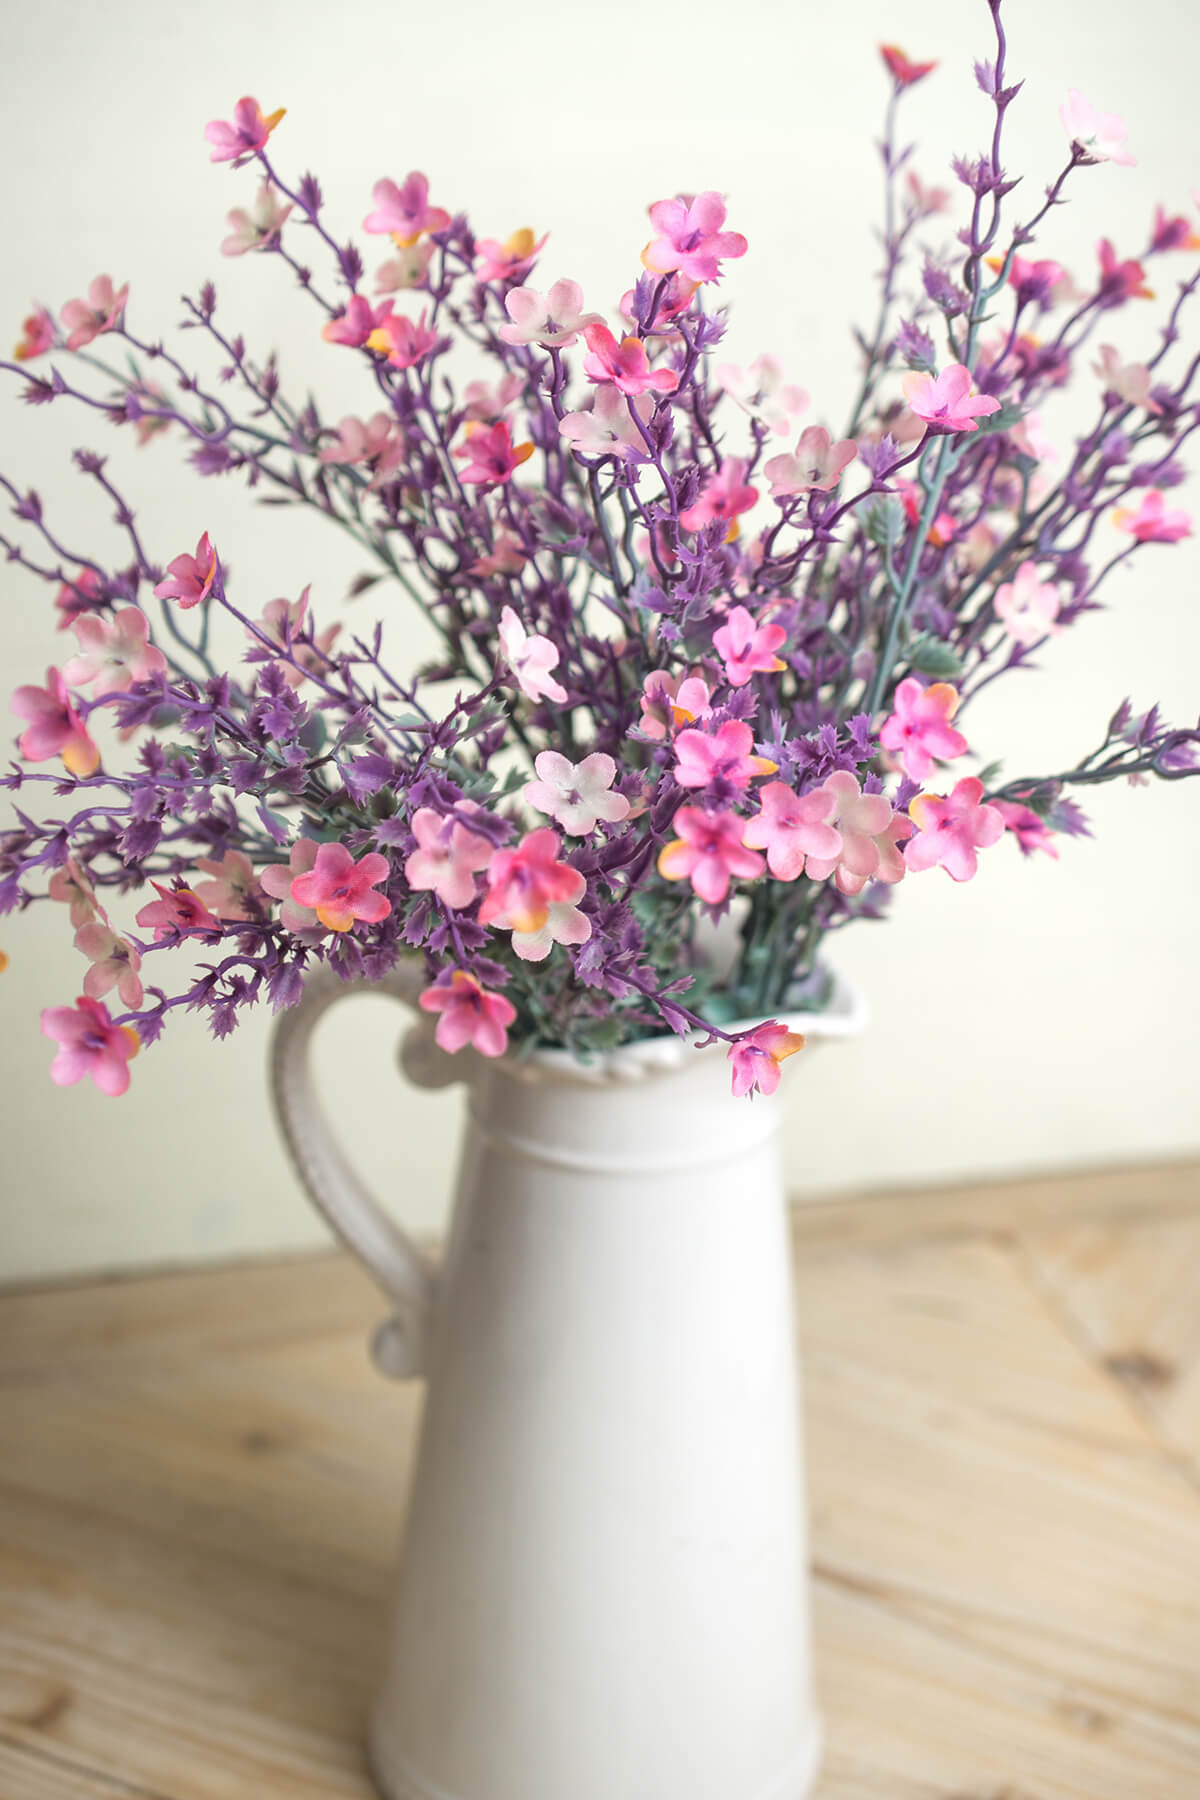 Silk flower stems and sprays artificial star flower bush 19in pink lavender reviewsmspy